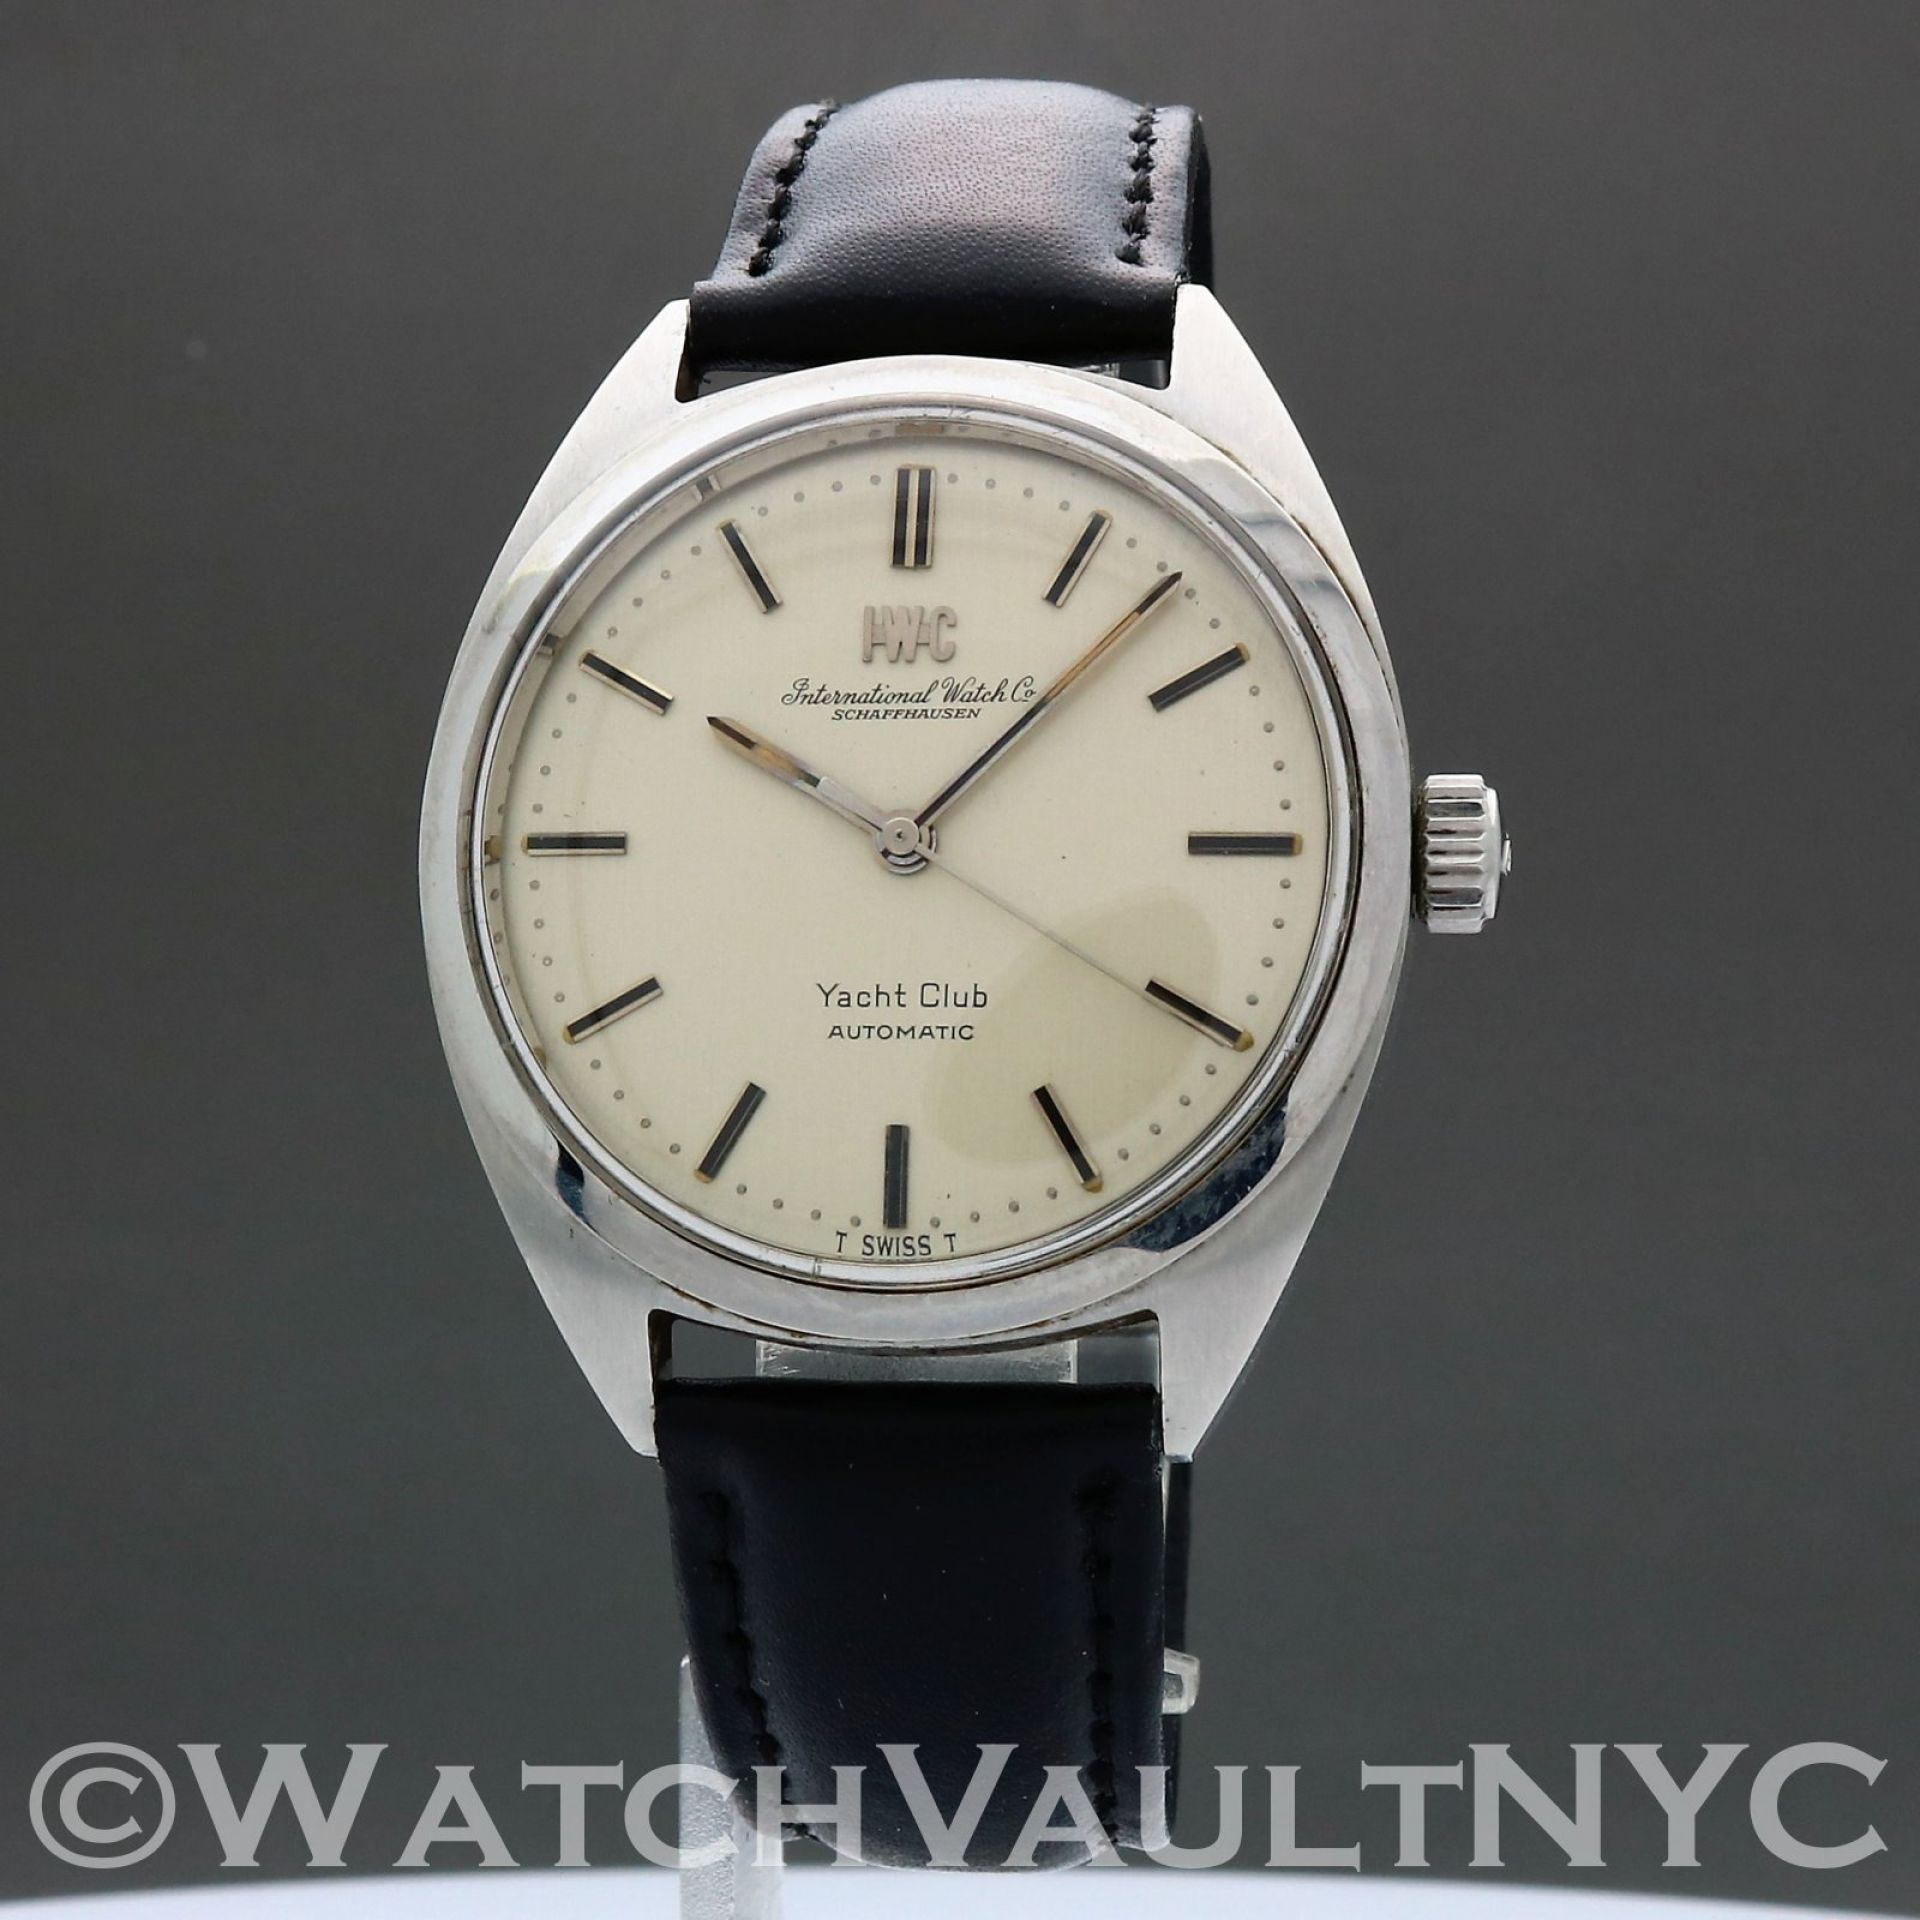 IWC Yacht Club 811A No-Date Vintage 36mm Auto RK308